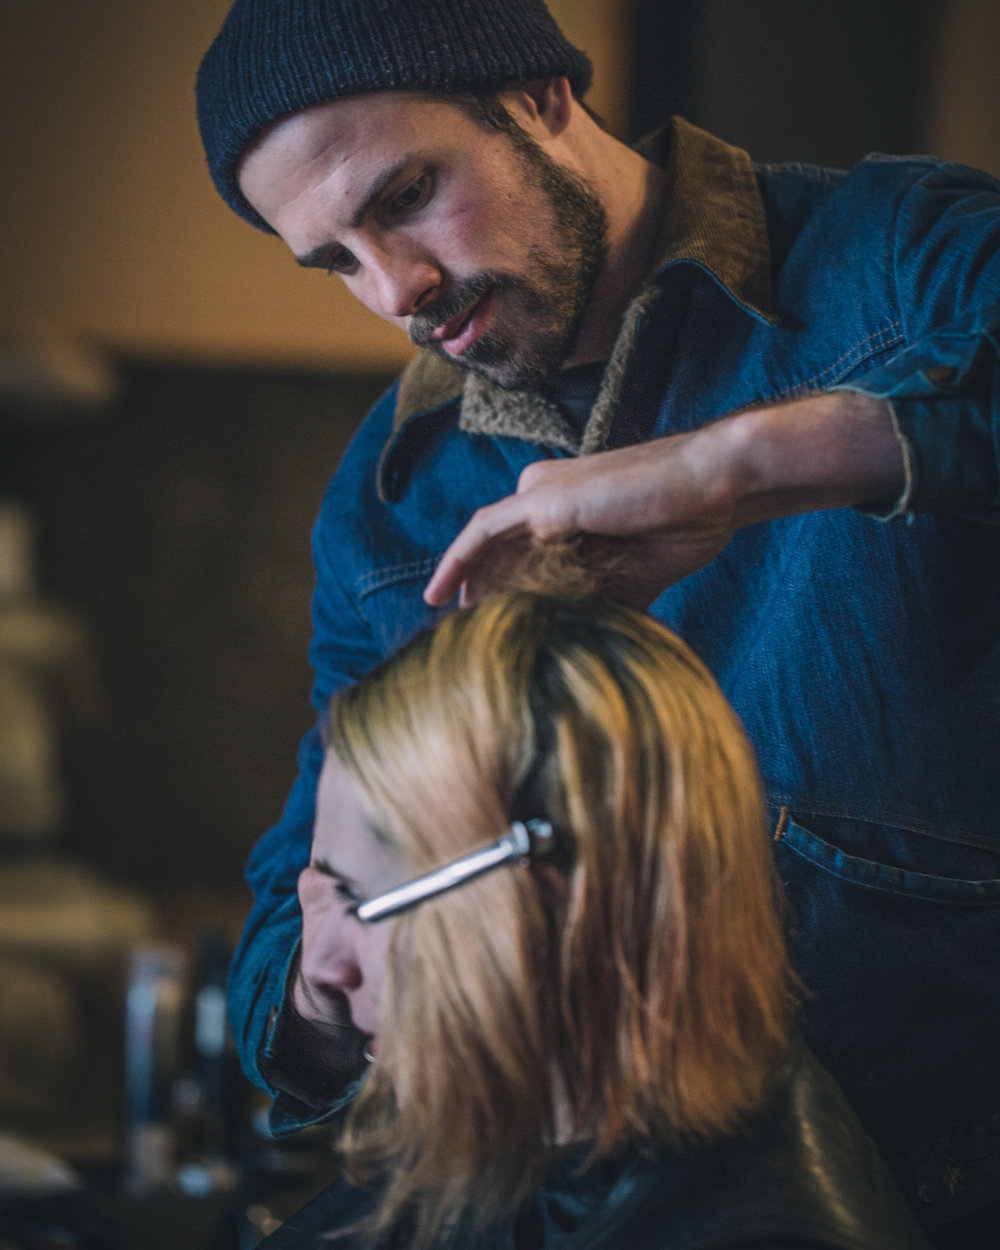 Joshua Coombes - is a British hairstylist who started up #DoSomethingForNothing. He has been working with homeless communities around the world, offering free haircuts. This initiative originally began in 2015, in London. His desire, quite simply, was to positively impact people's lives in the present day, telling their stories on his Instagram channel. Do Something For Nothing is a movement that connects, encourages and inspires other people to carry out small acts of kindness according to their particular skill, passing it on to those who have nothing.